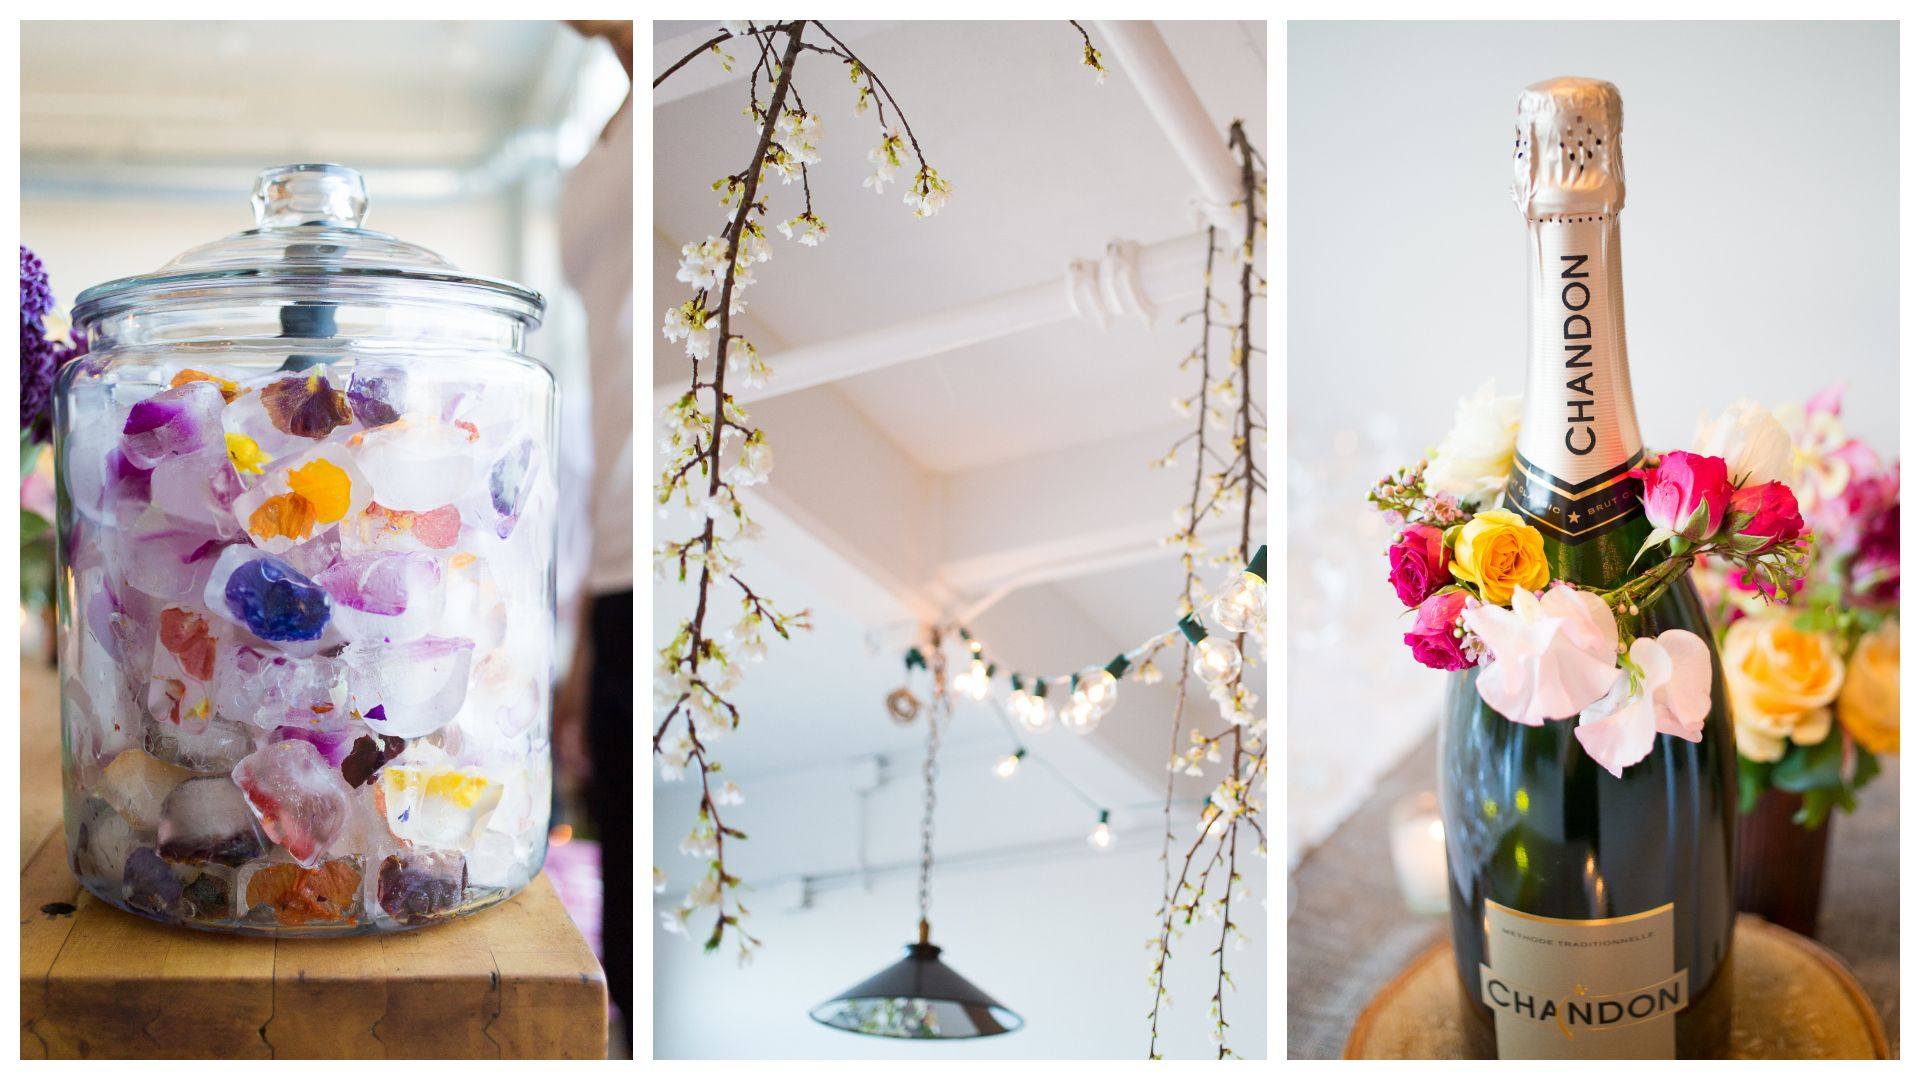 9 Ways to Decorate With Flowers Beyond the Vase